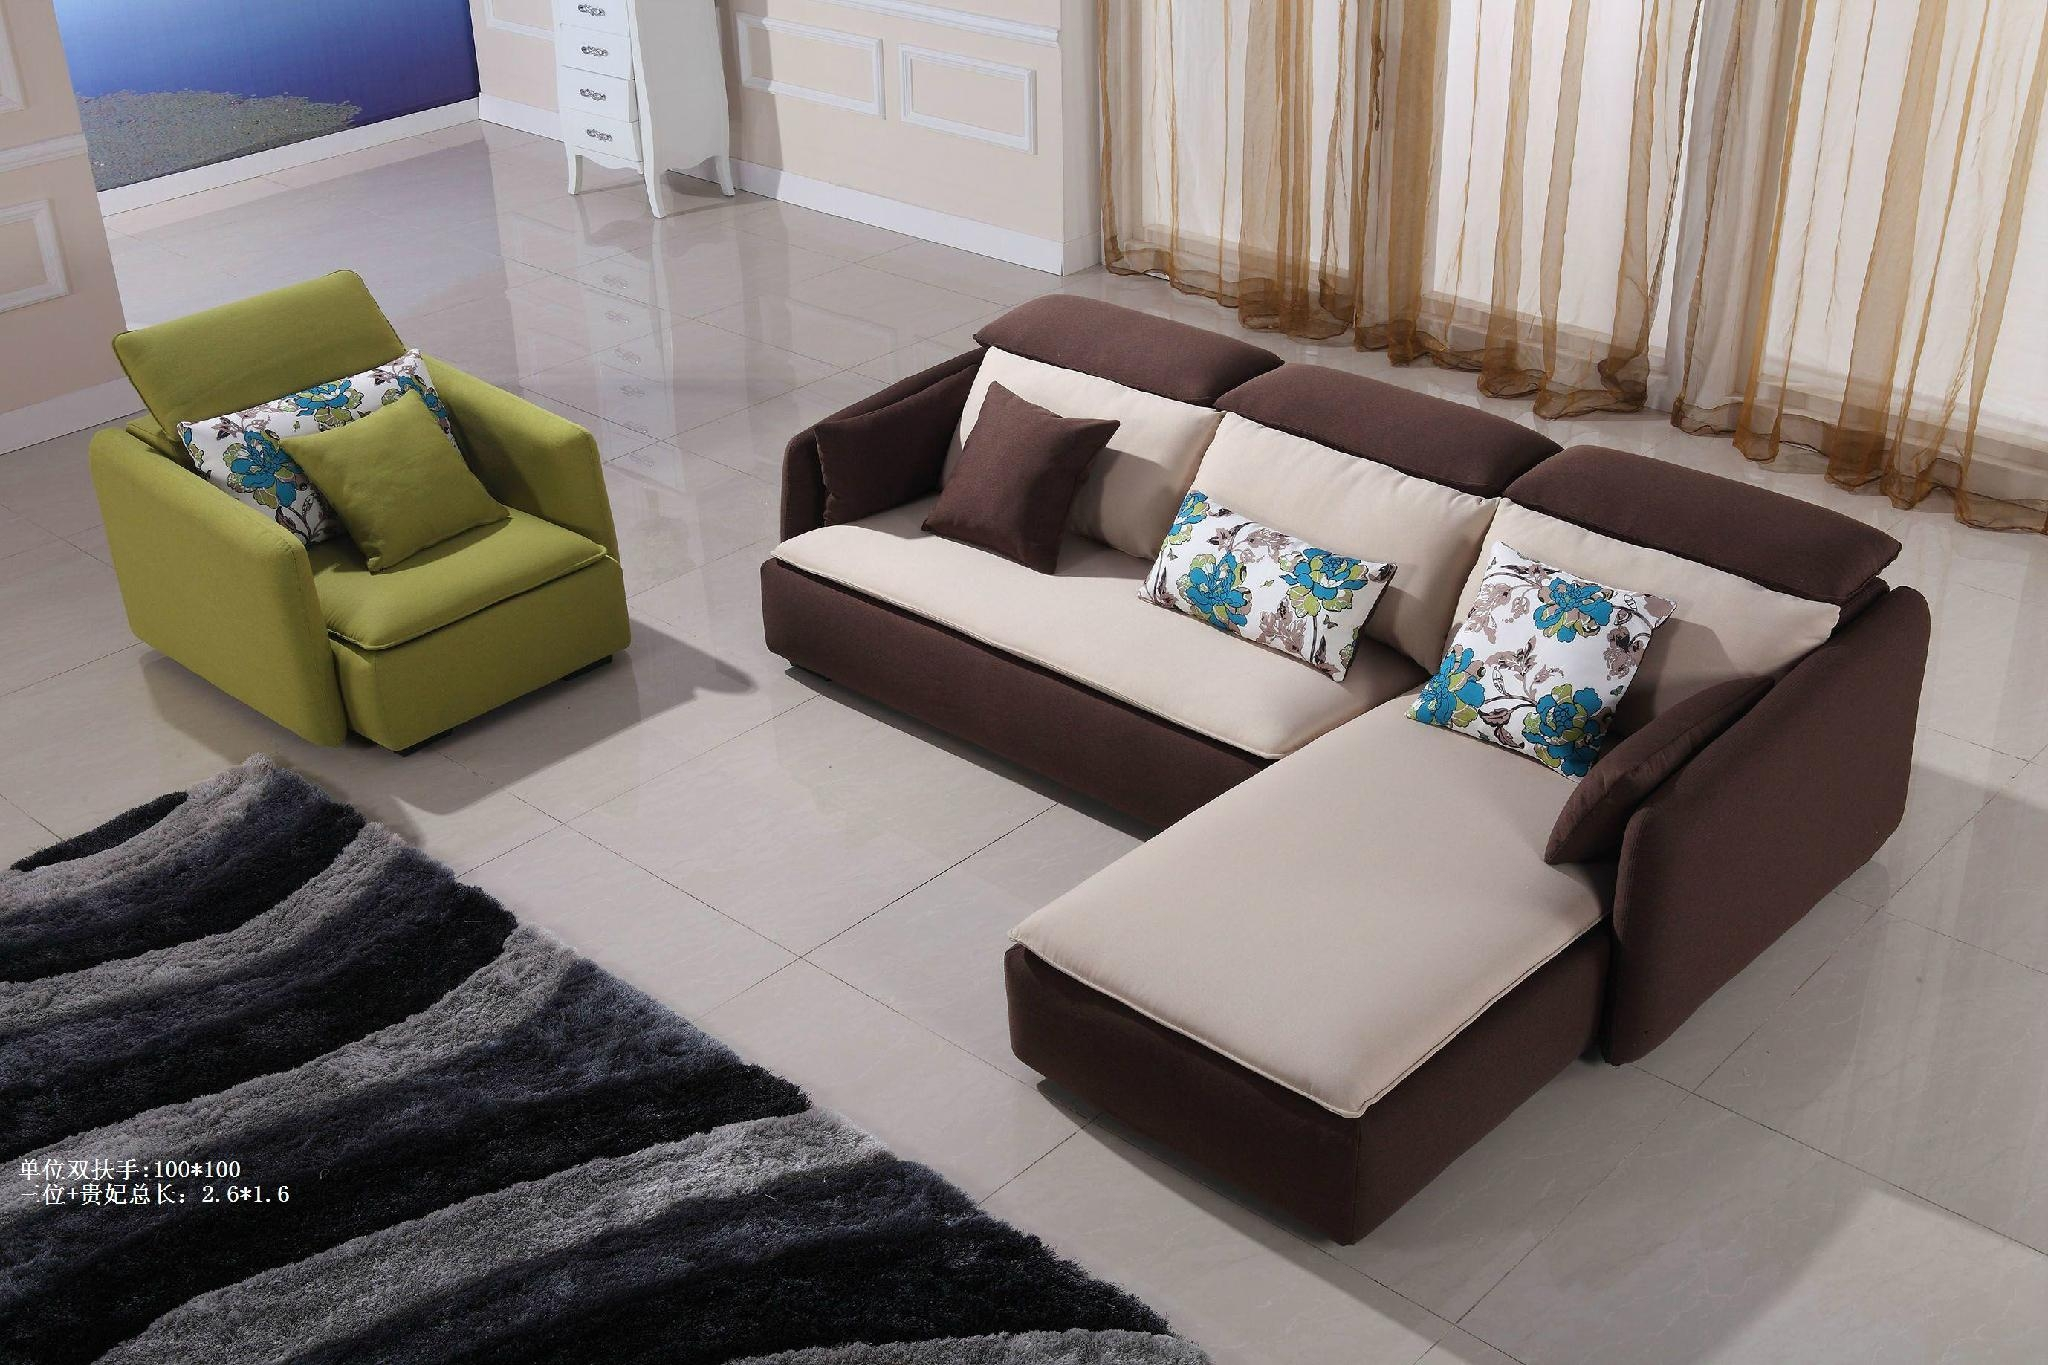 Hall furniture design with sofa set choosing a sofa sofa for Sofa set designs for hall